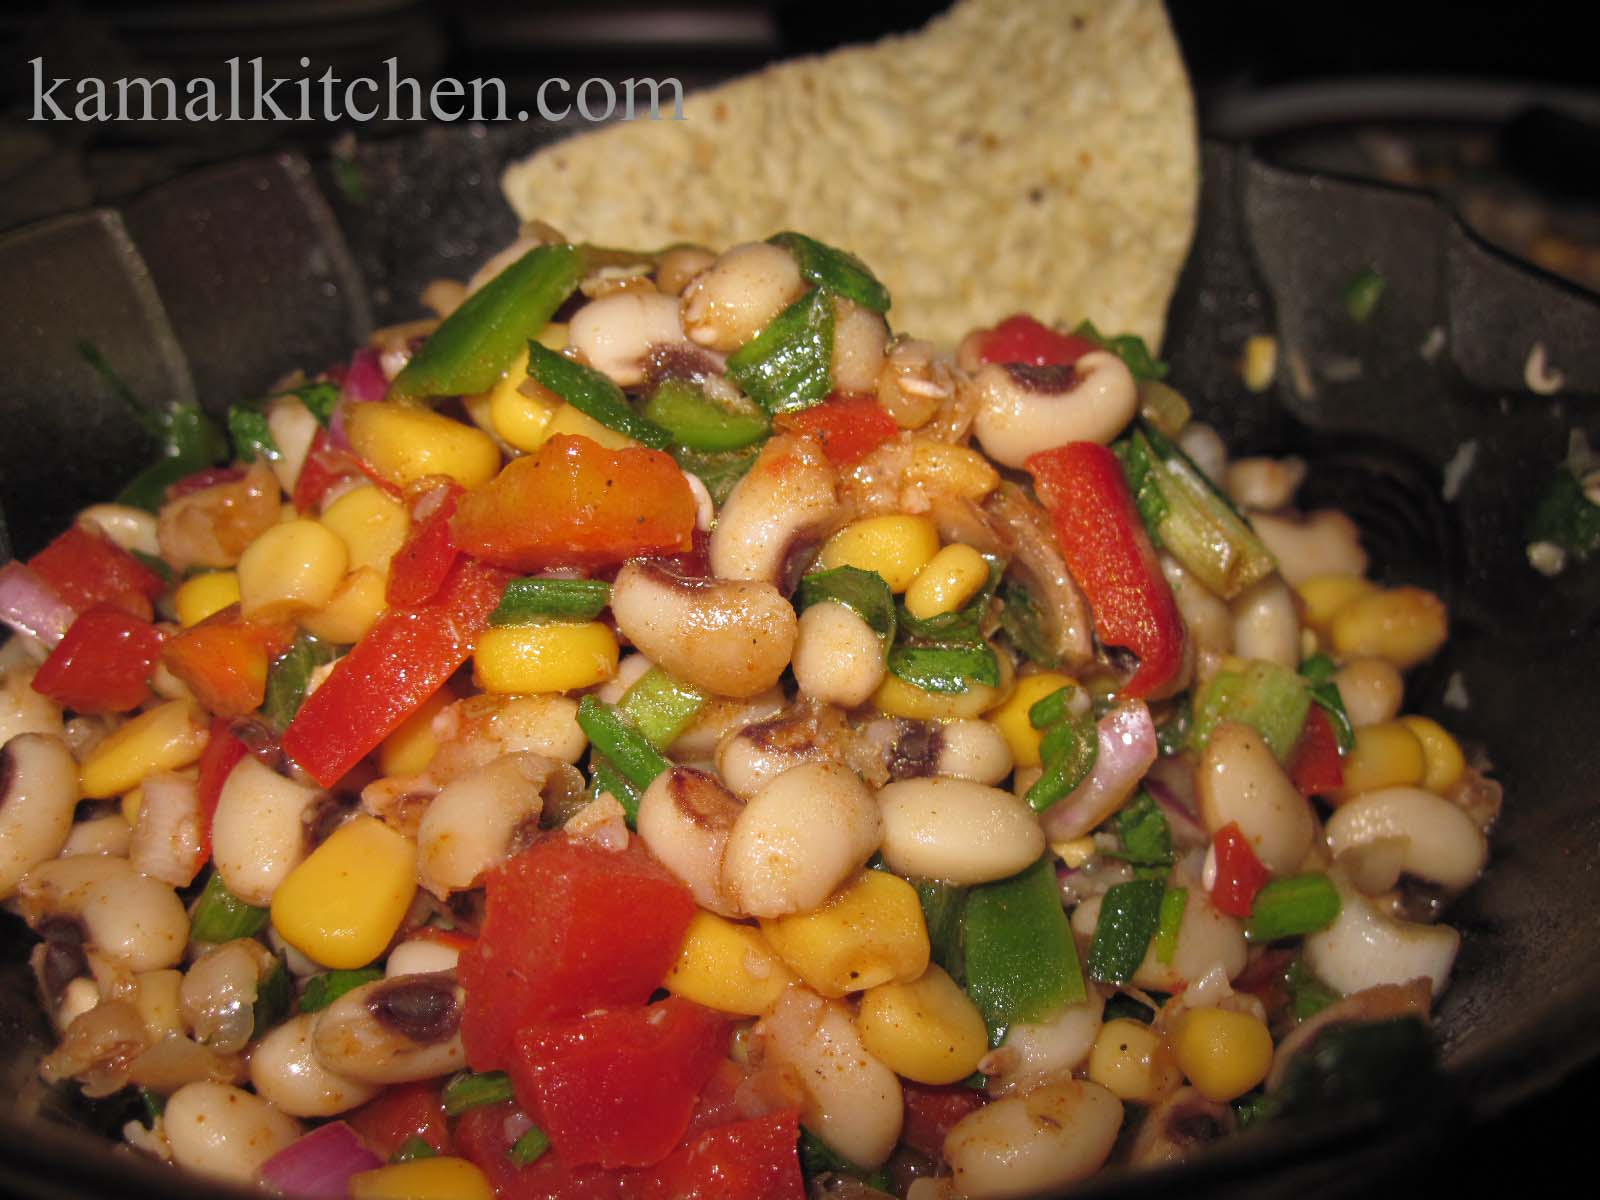 Texas Caviar and Happy New Year 2011